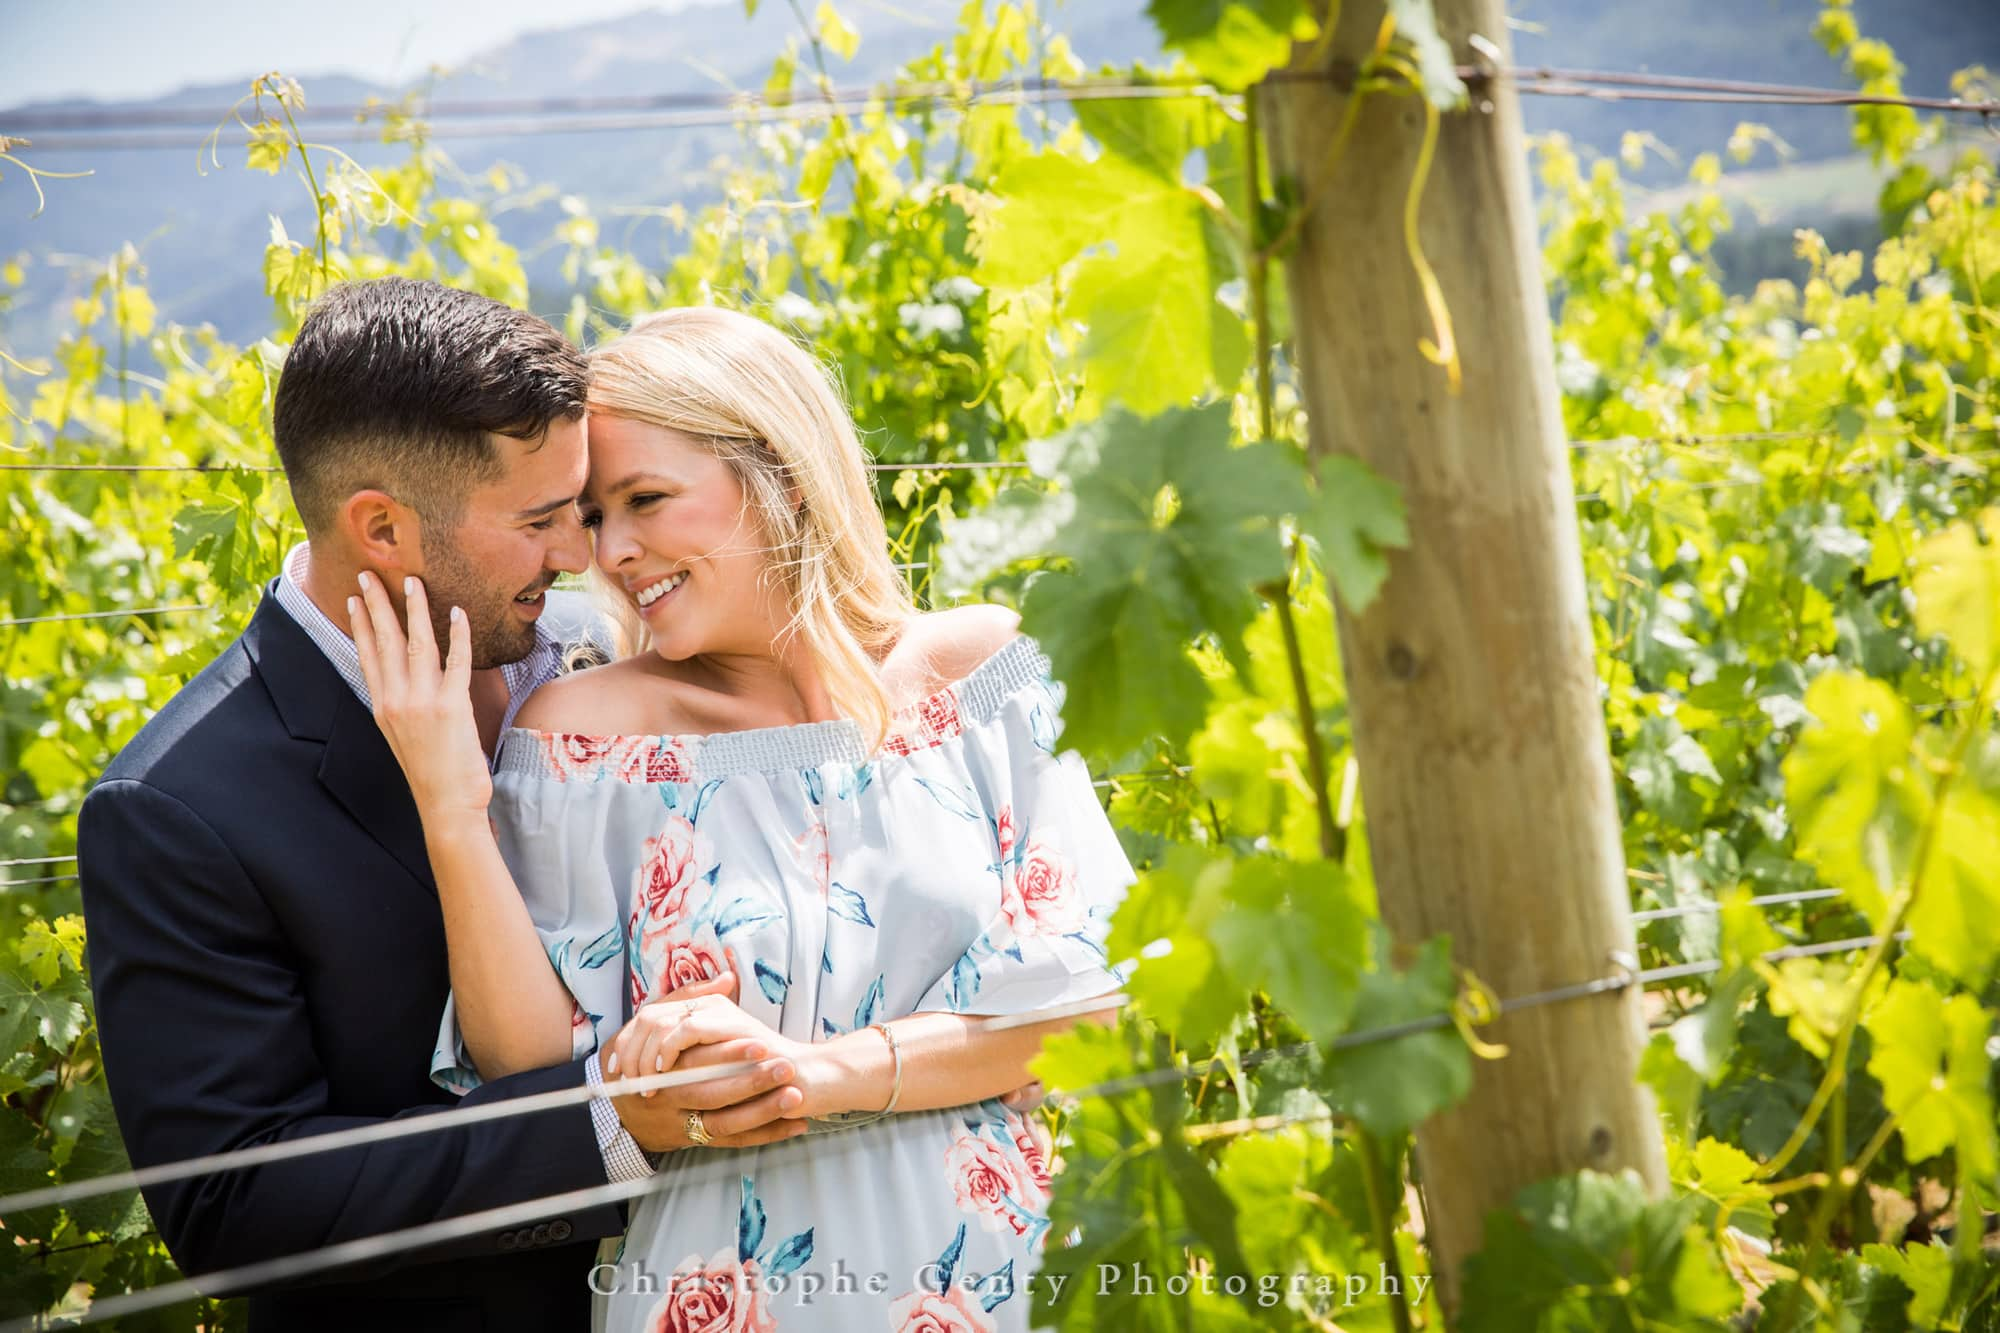 Marriage Proposal Photography in Napa -1023